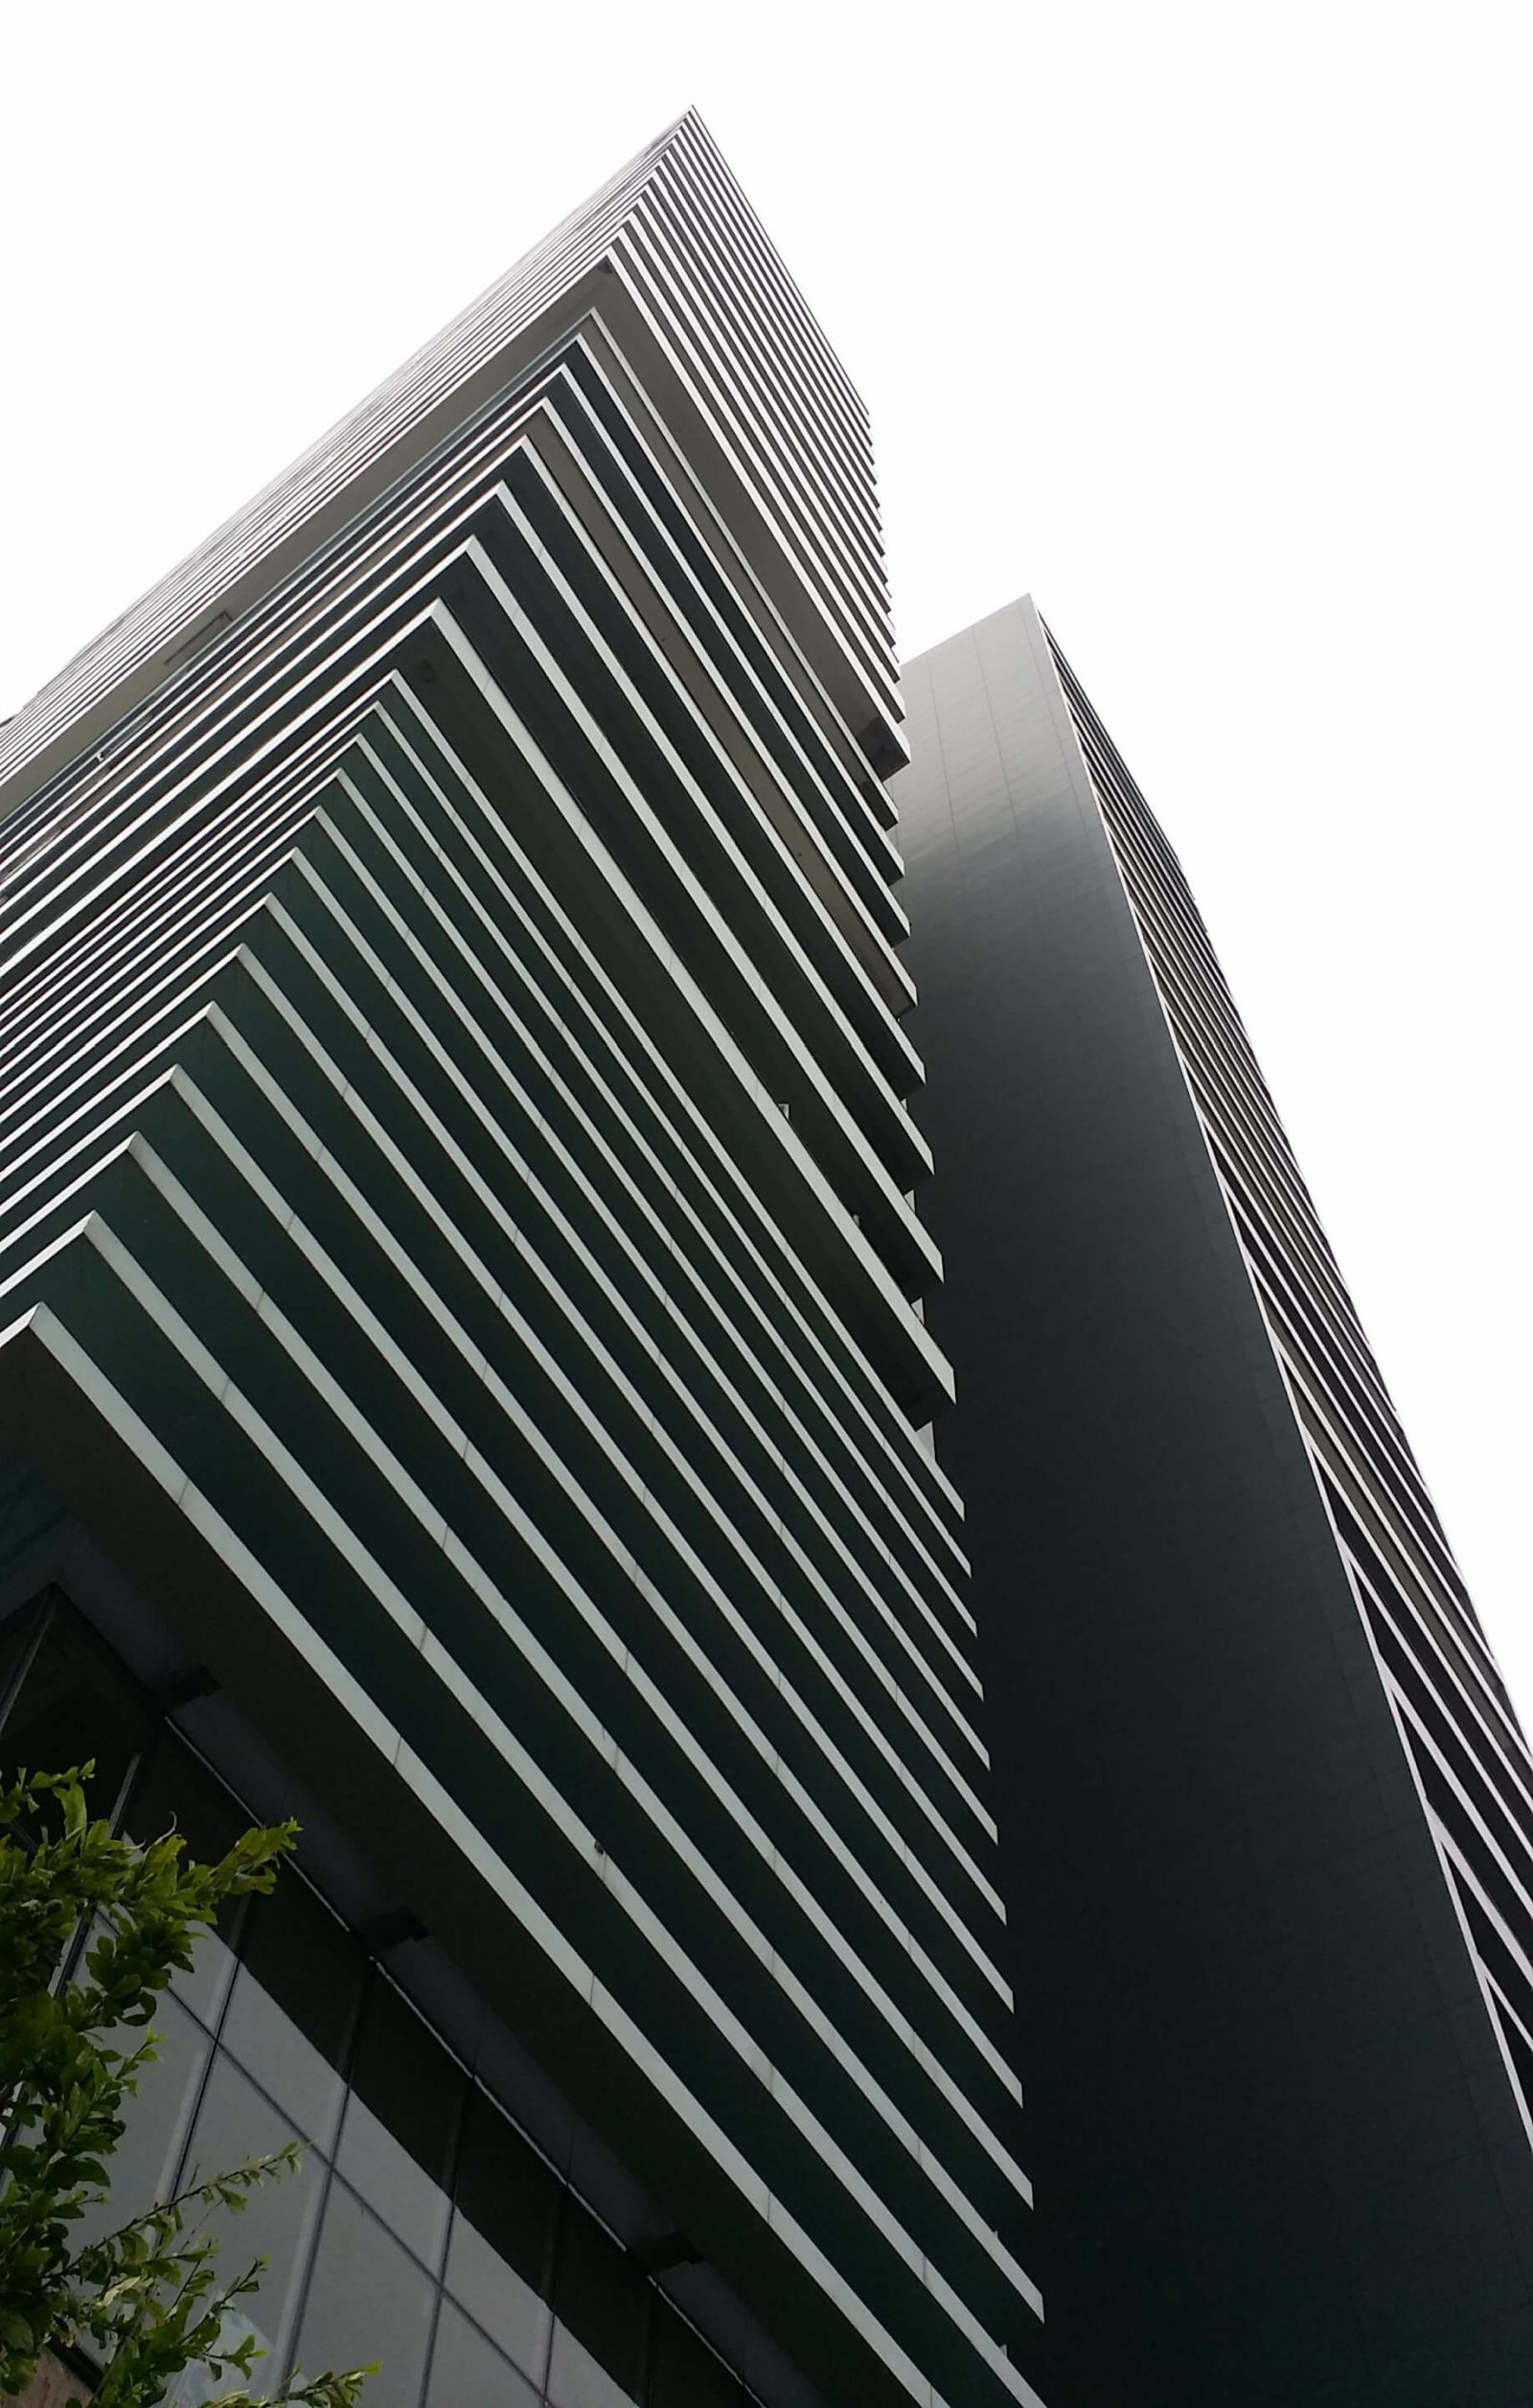 Low angle image of the facade of the tower Hei